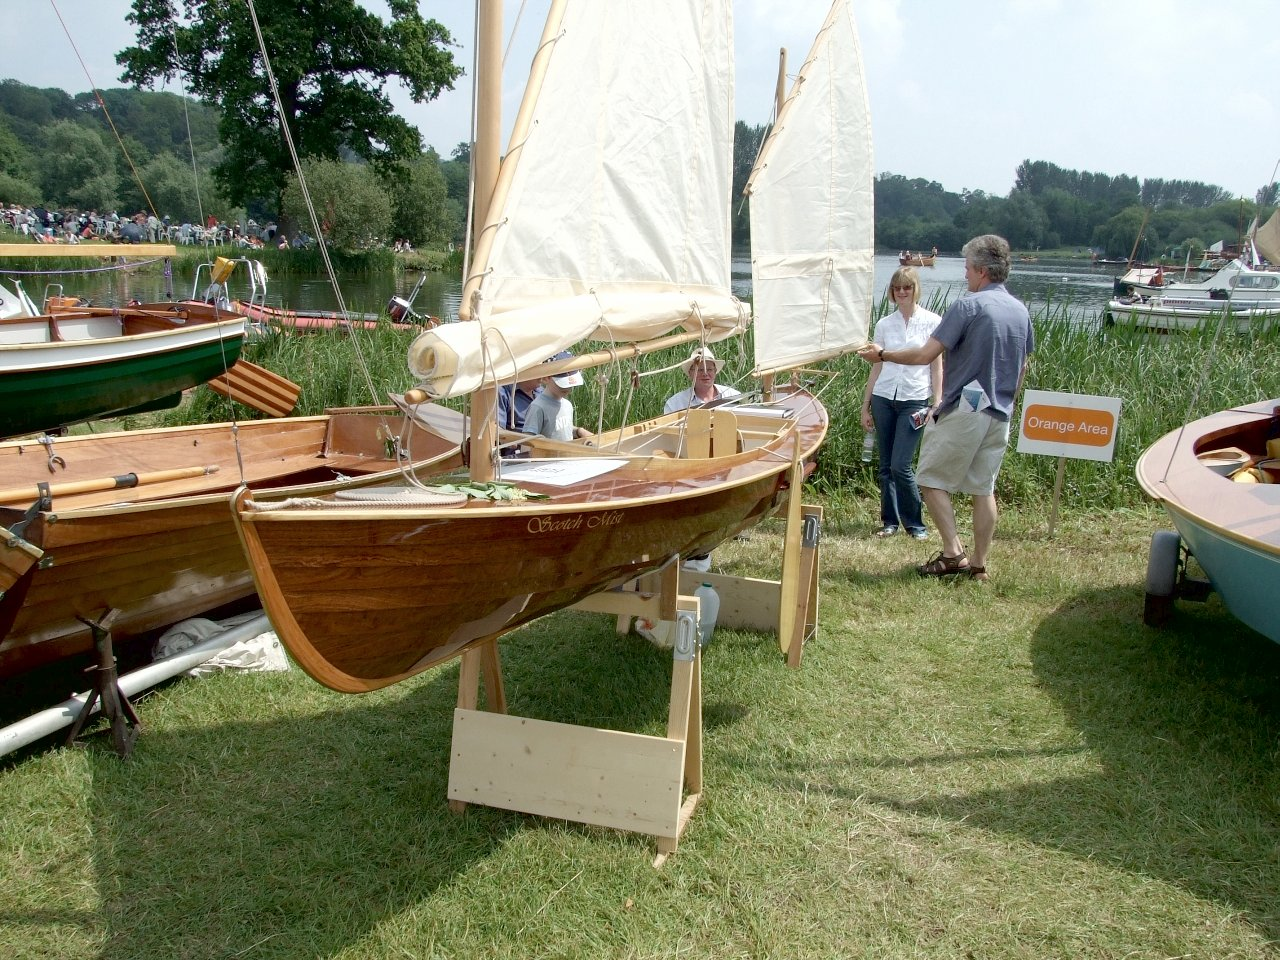 Gorgeous Oughtred sailing canoe wins 2007 Watercraft boatbuilding prize | intheboatshed.net